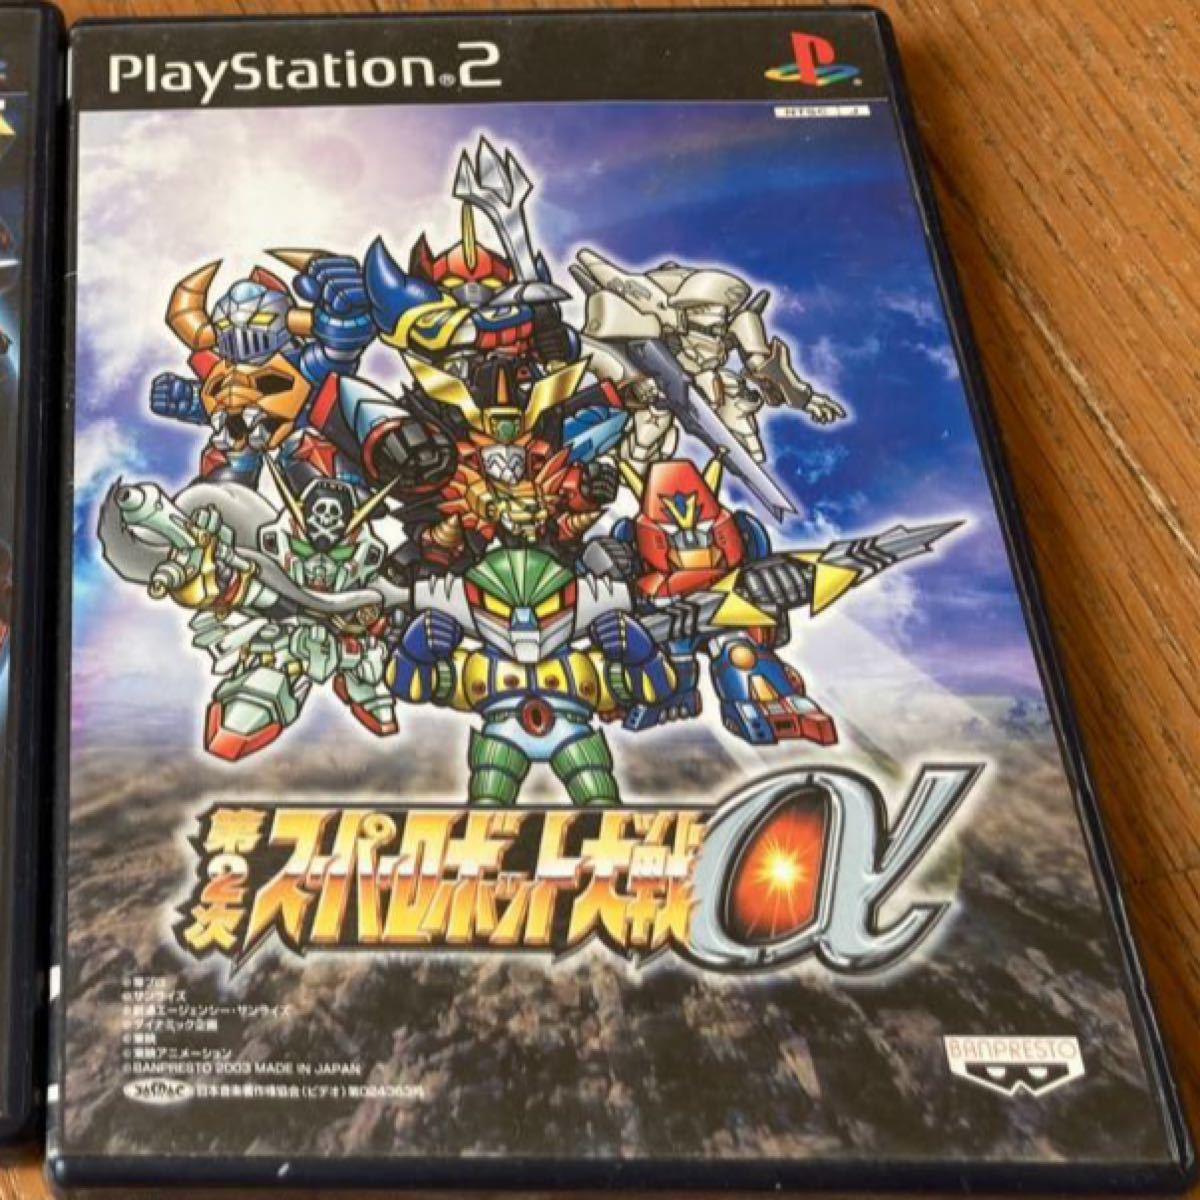 PS2  第2次スーパーロボット大戦α ソフト PlayStation プレイステーション